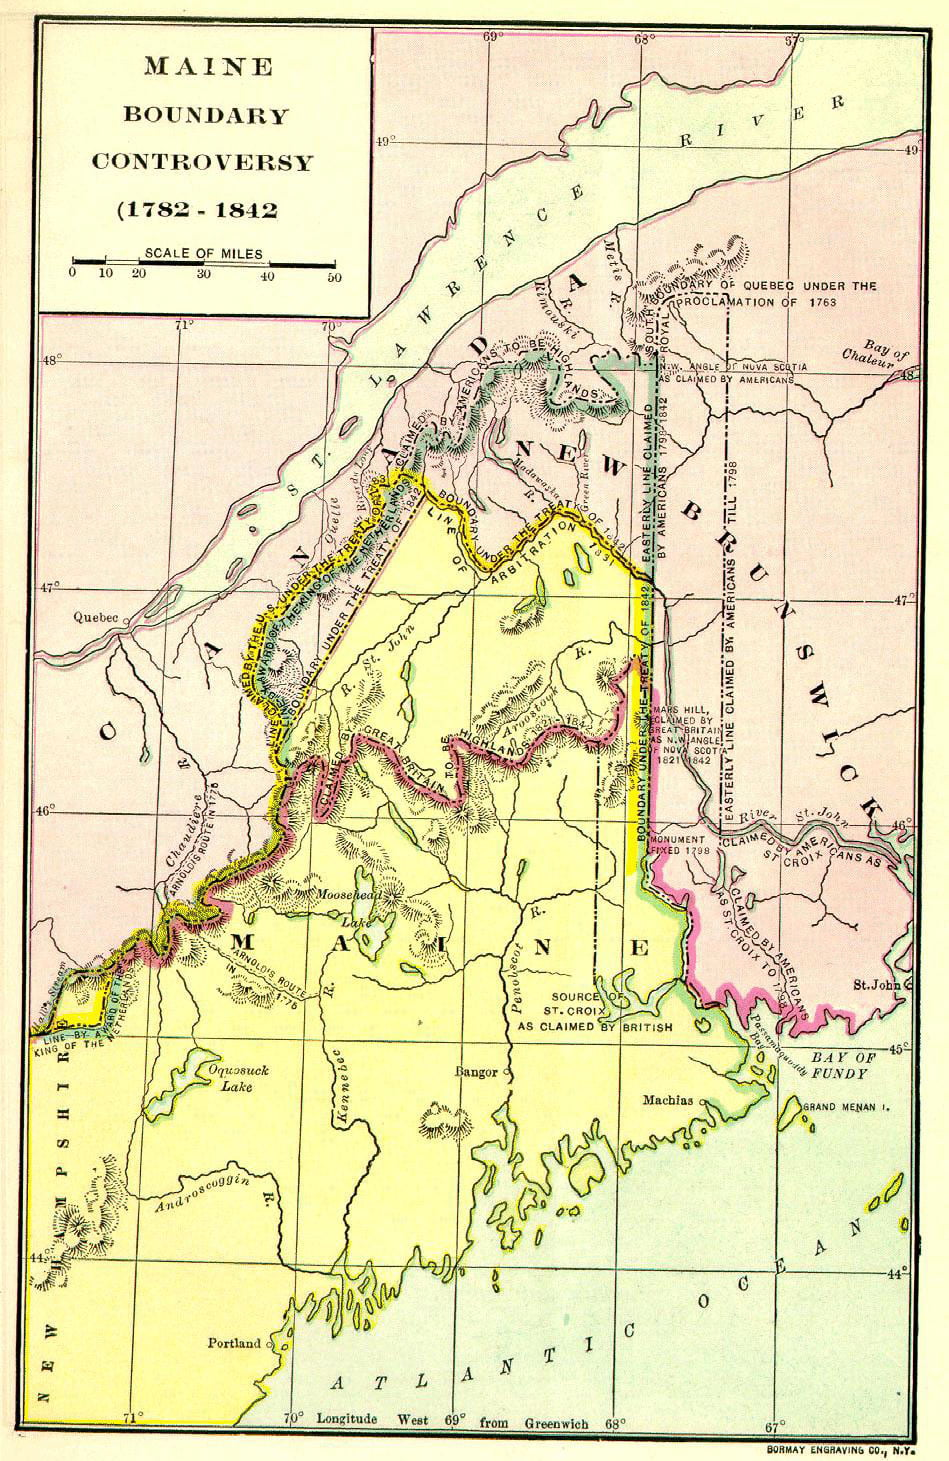 Maine Boundary Controversy